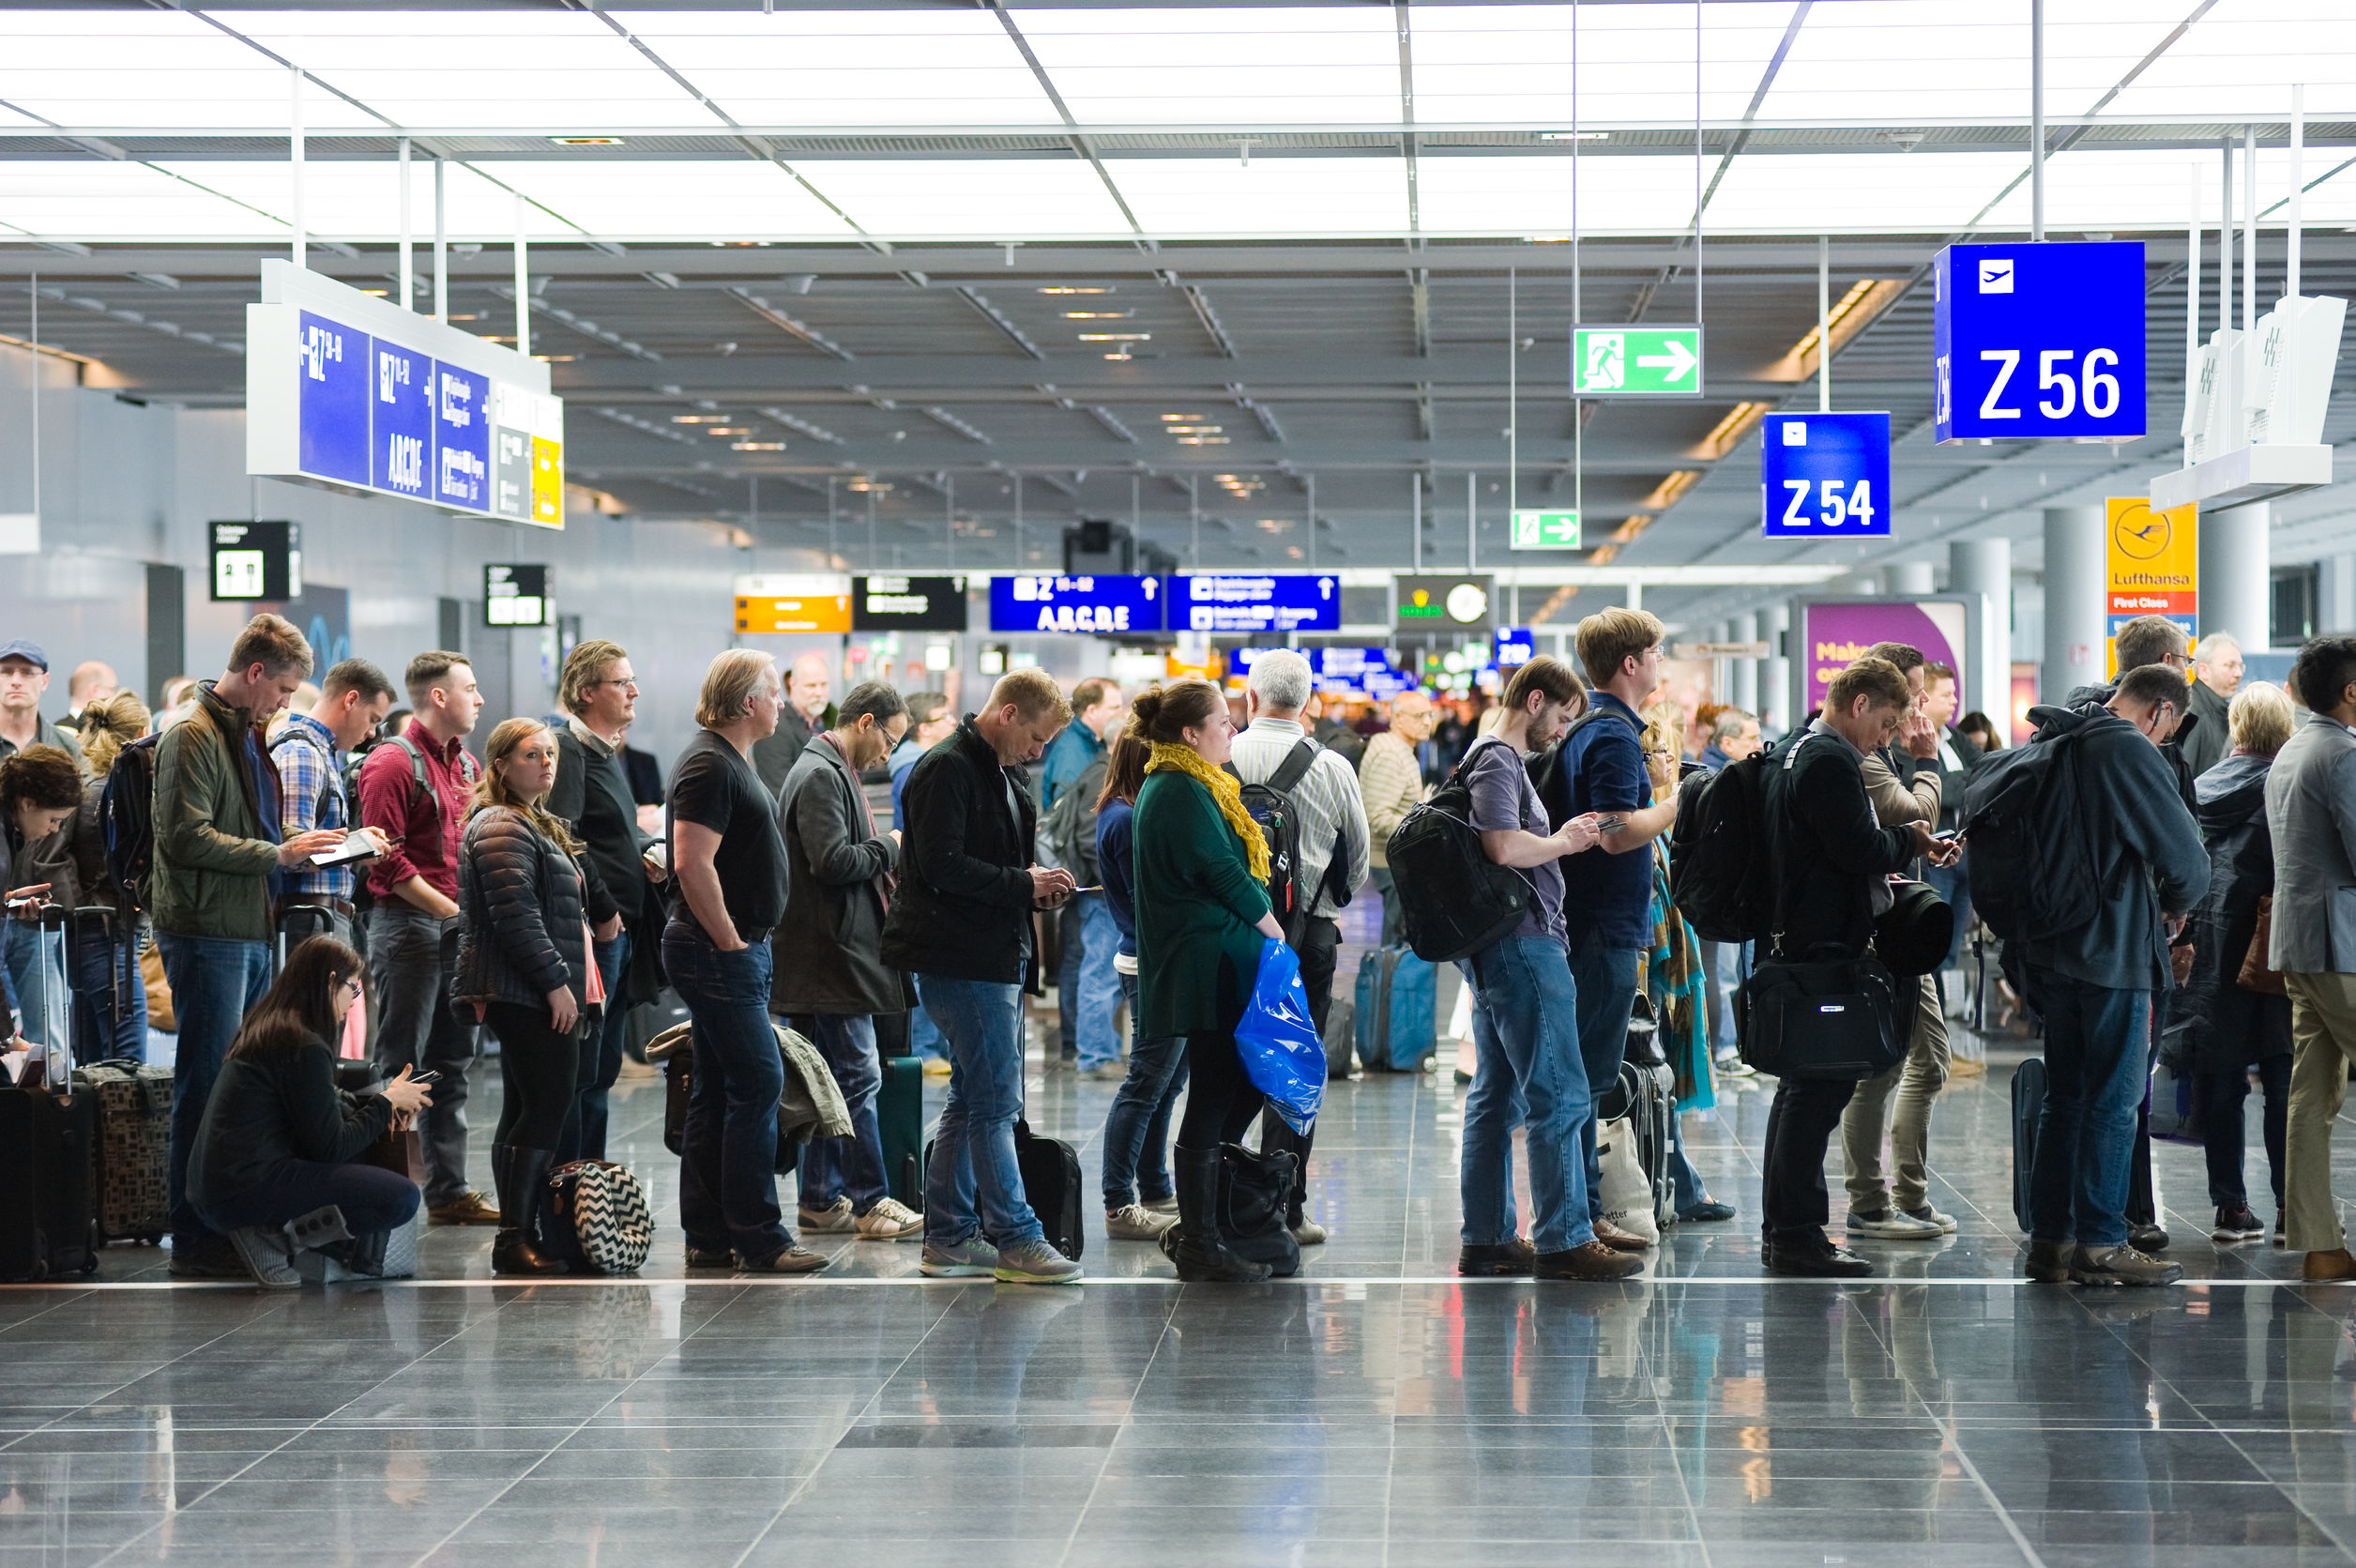 Article image for A UK company wants to weigh airline passengers at airports